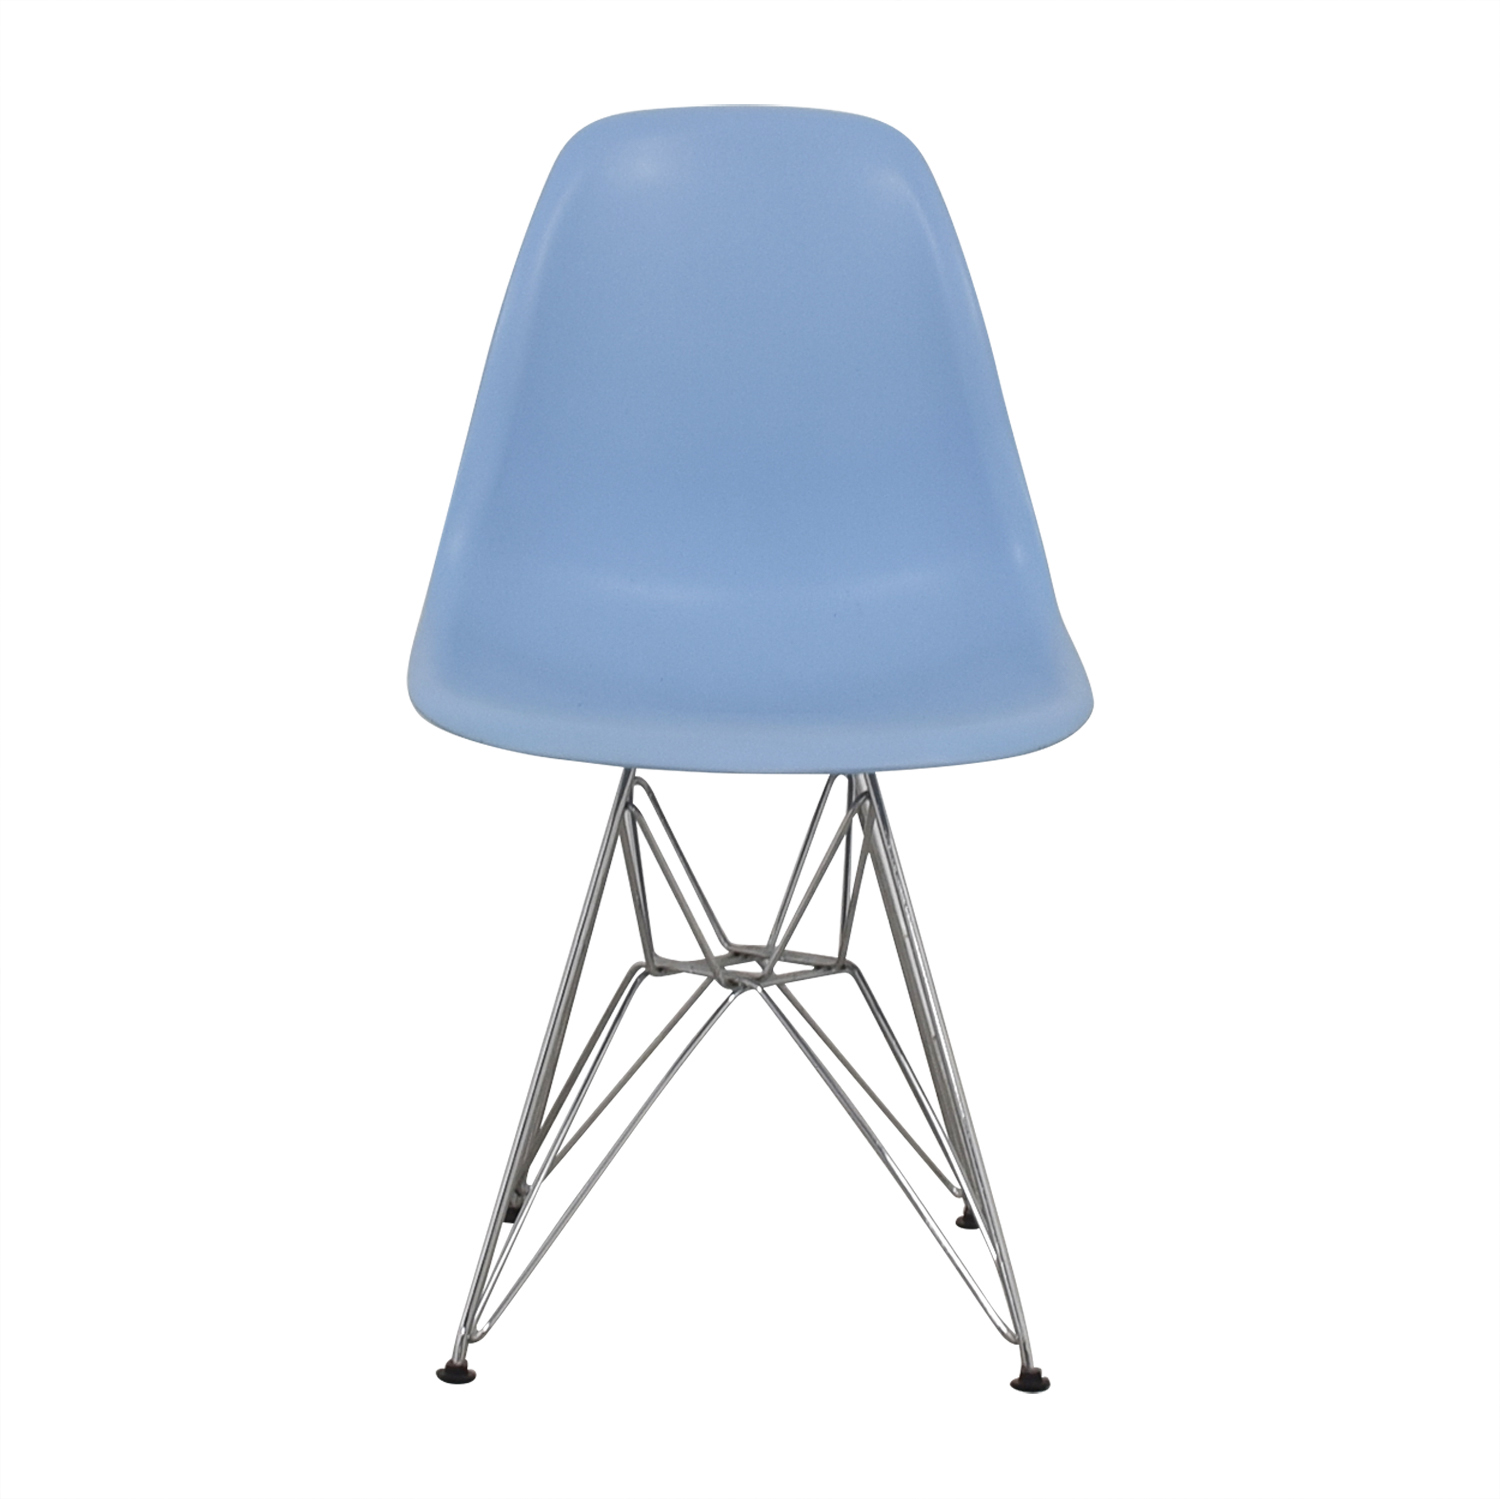 Light Blue Eames-Style Chair on sale